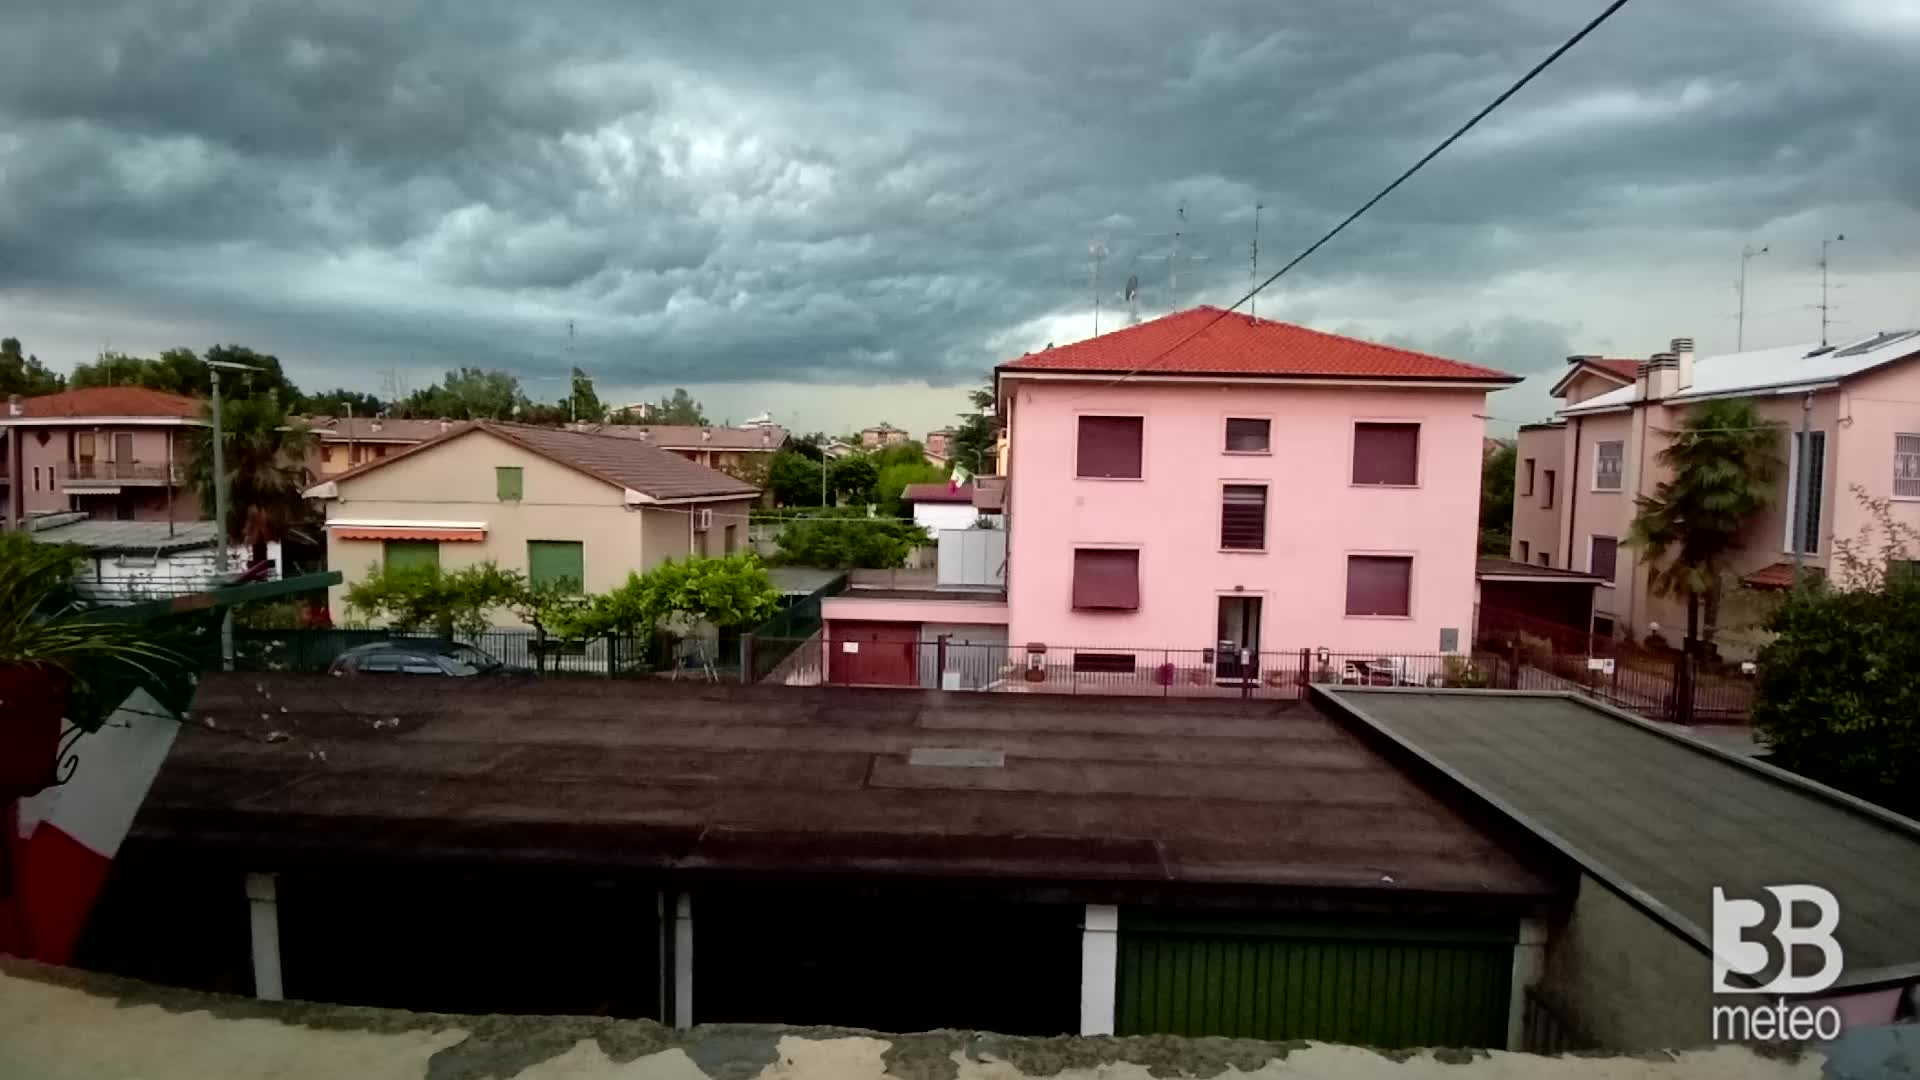 Cronaca METEO VIDEO, time lapse del temporale